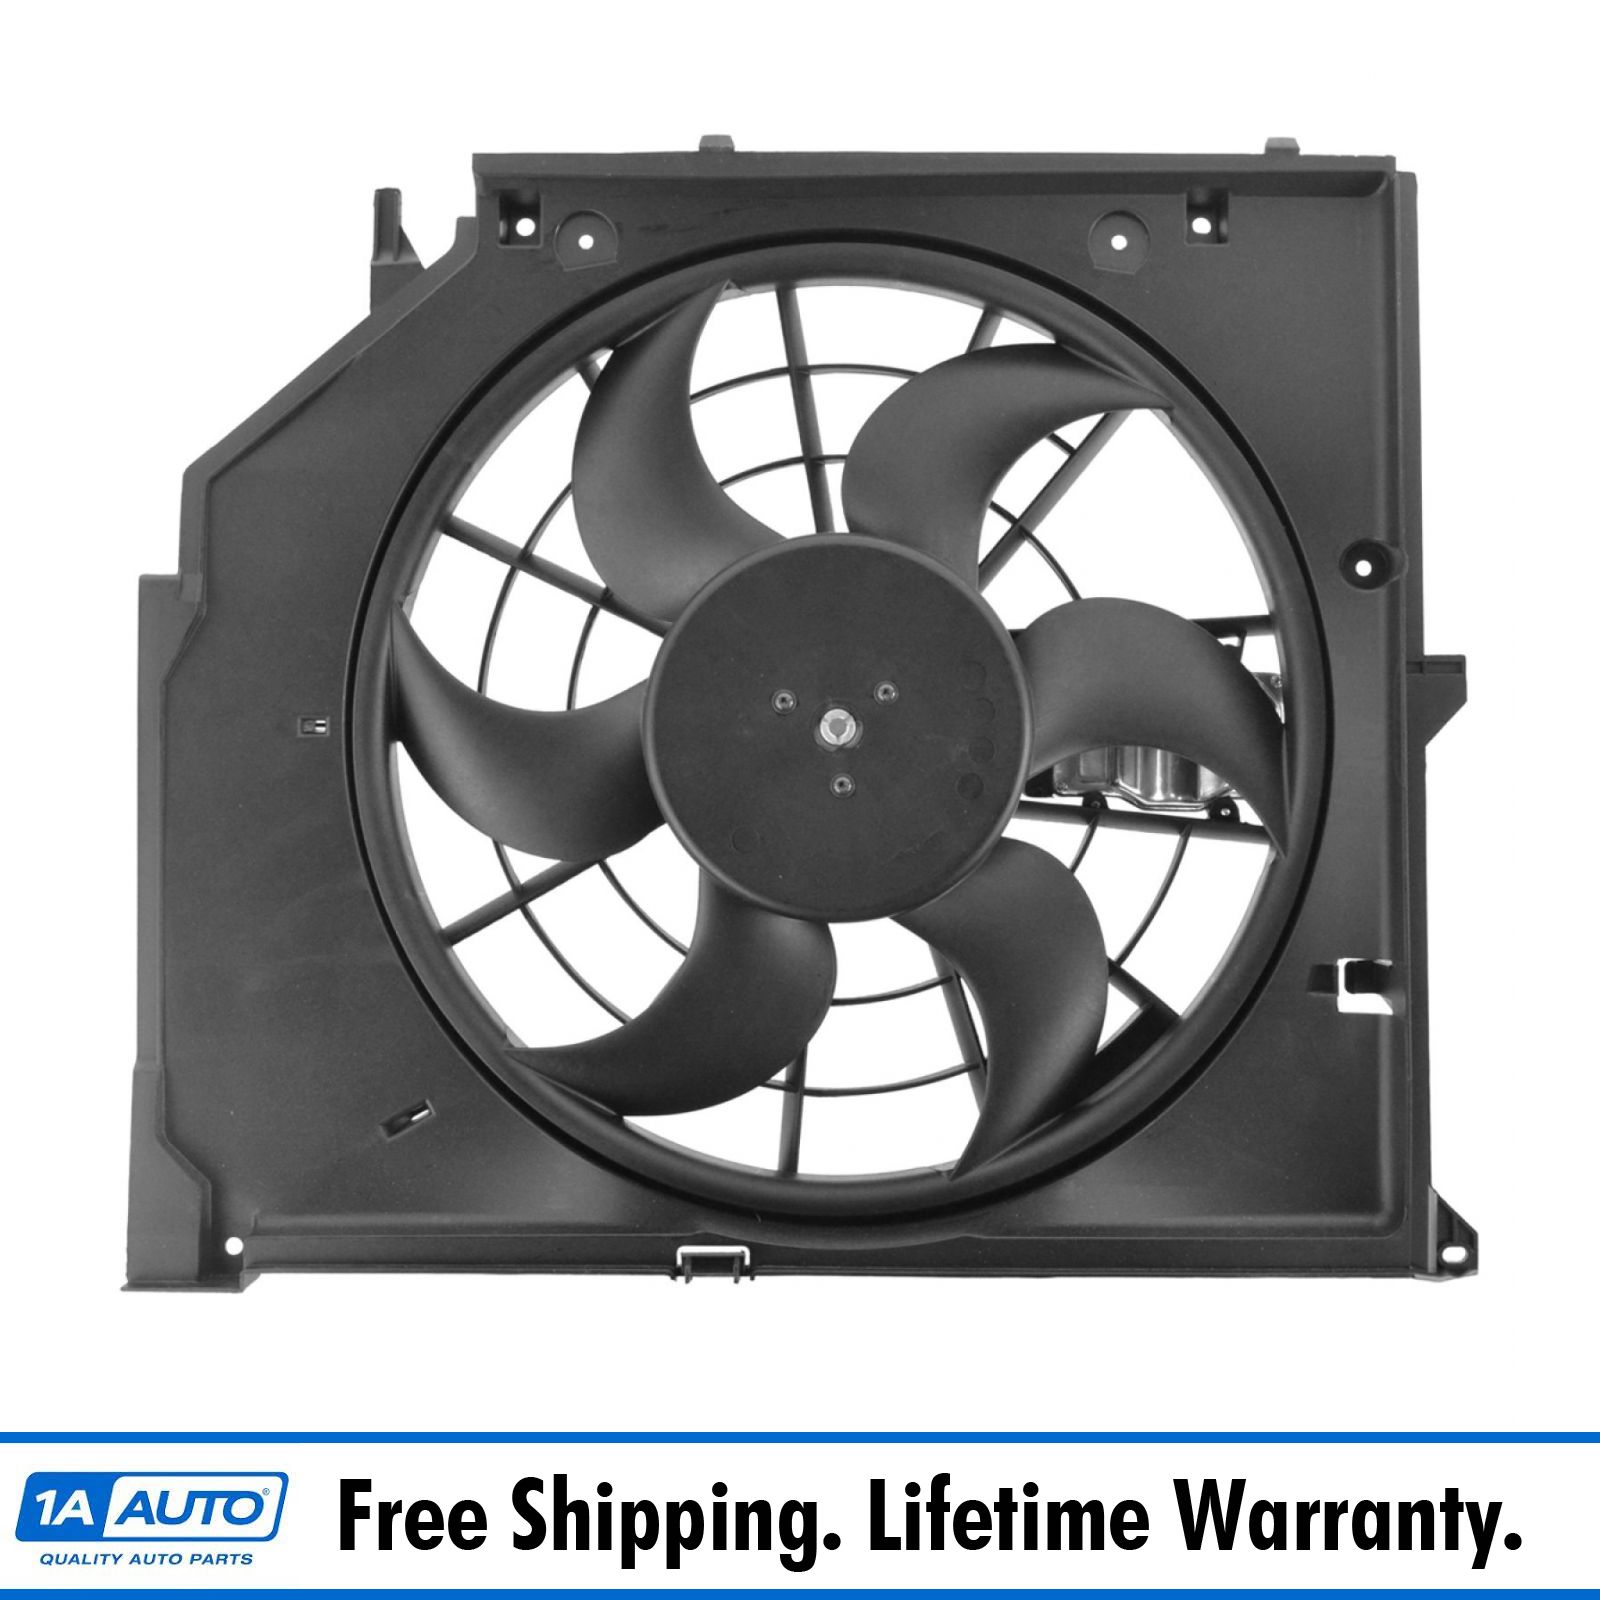 Puller Radiator Cooling Fan Assembly For BMW 3 Series E46